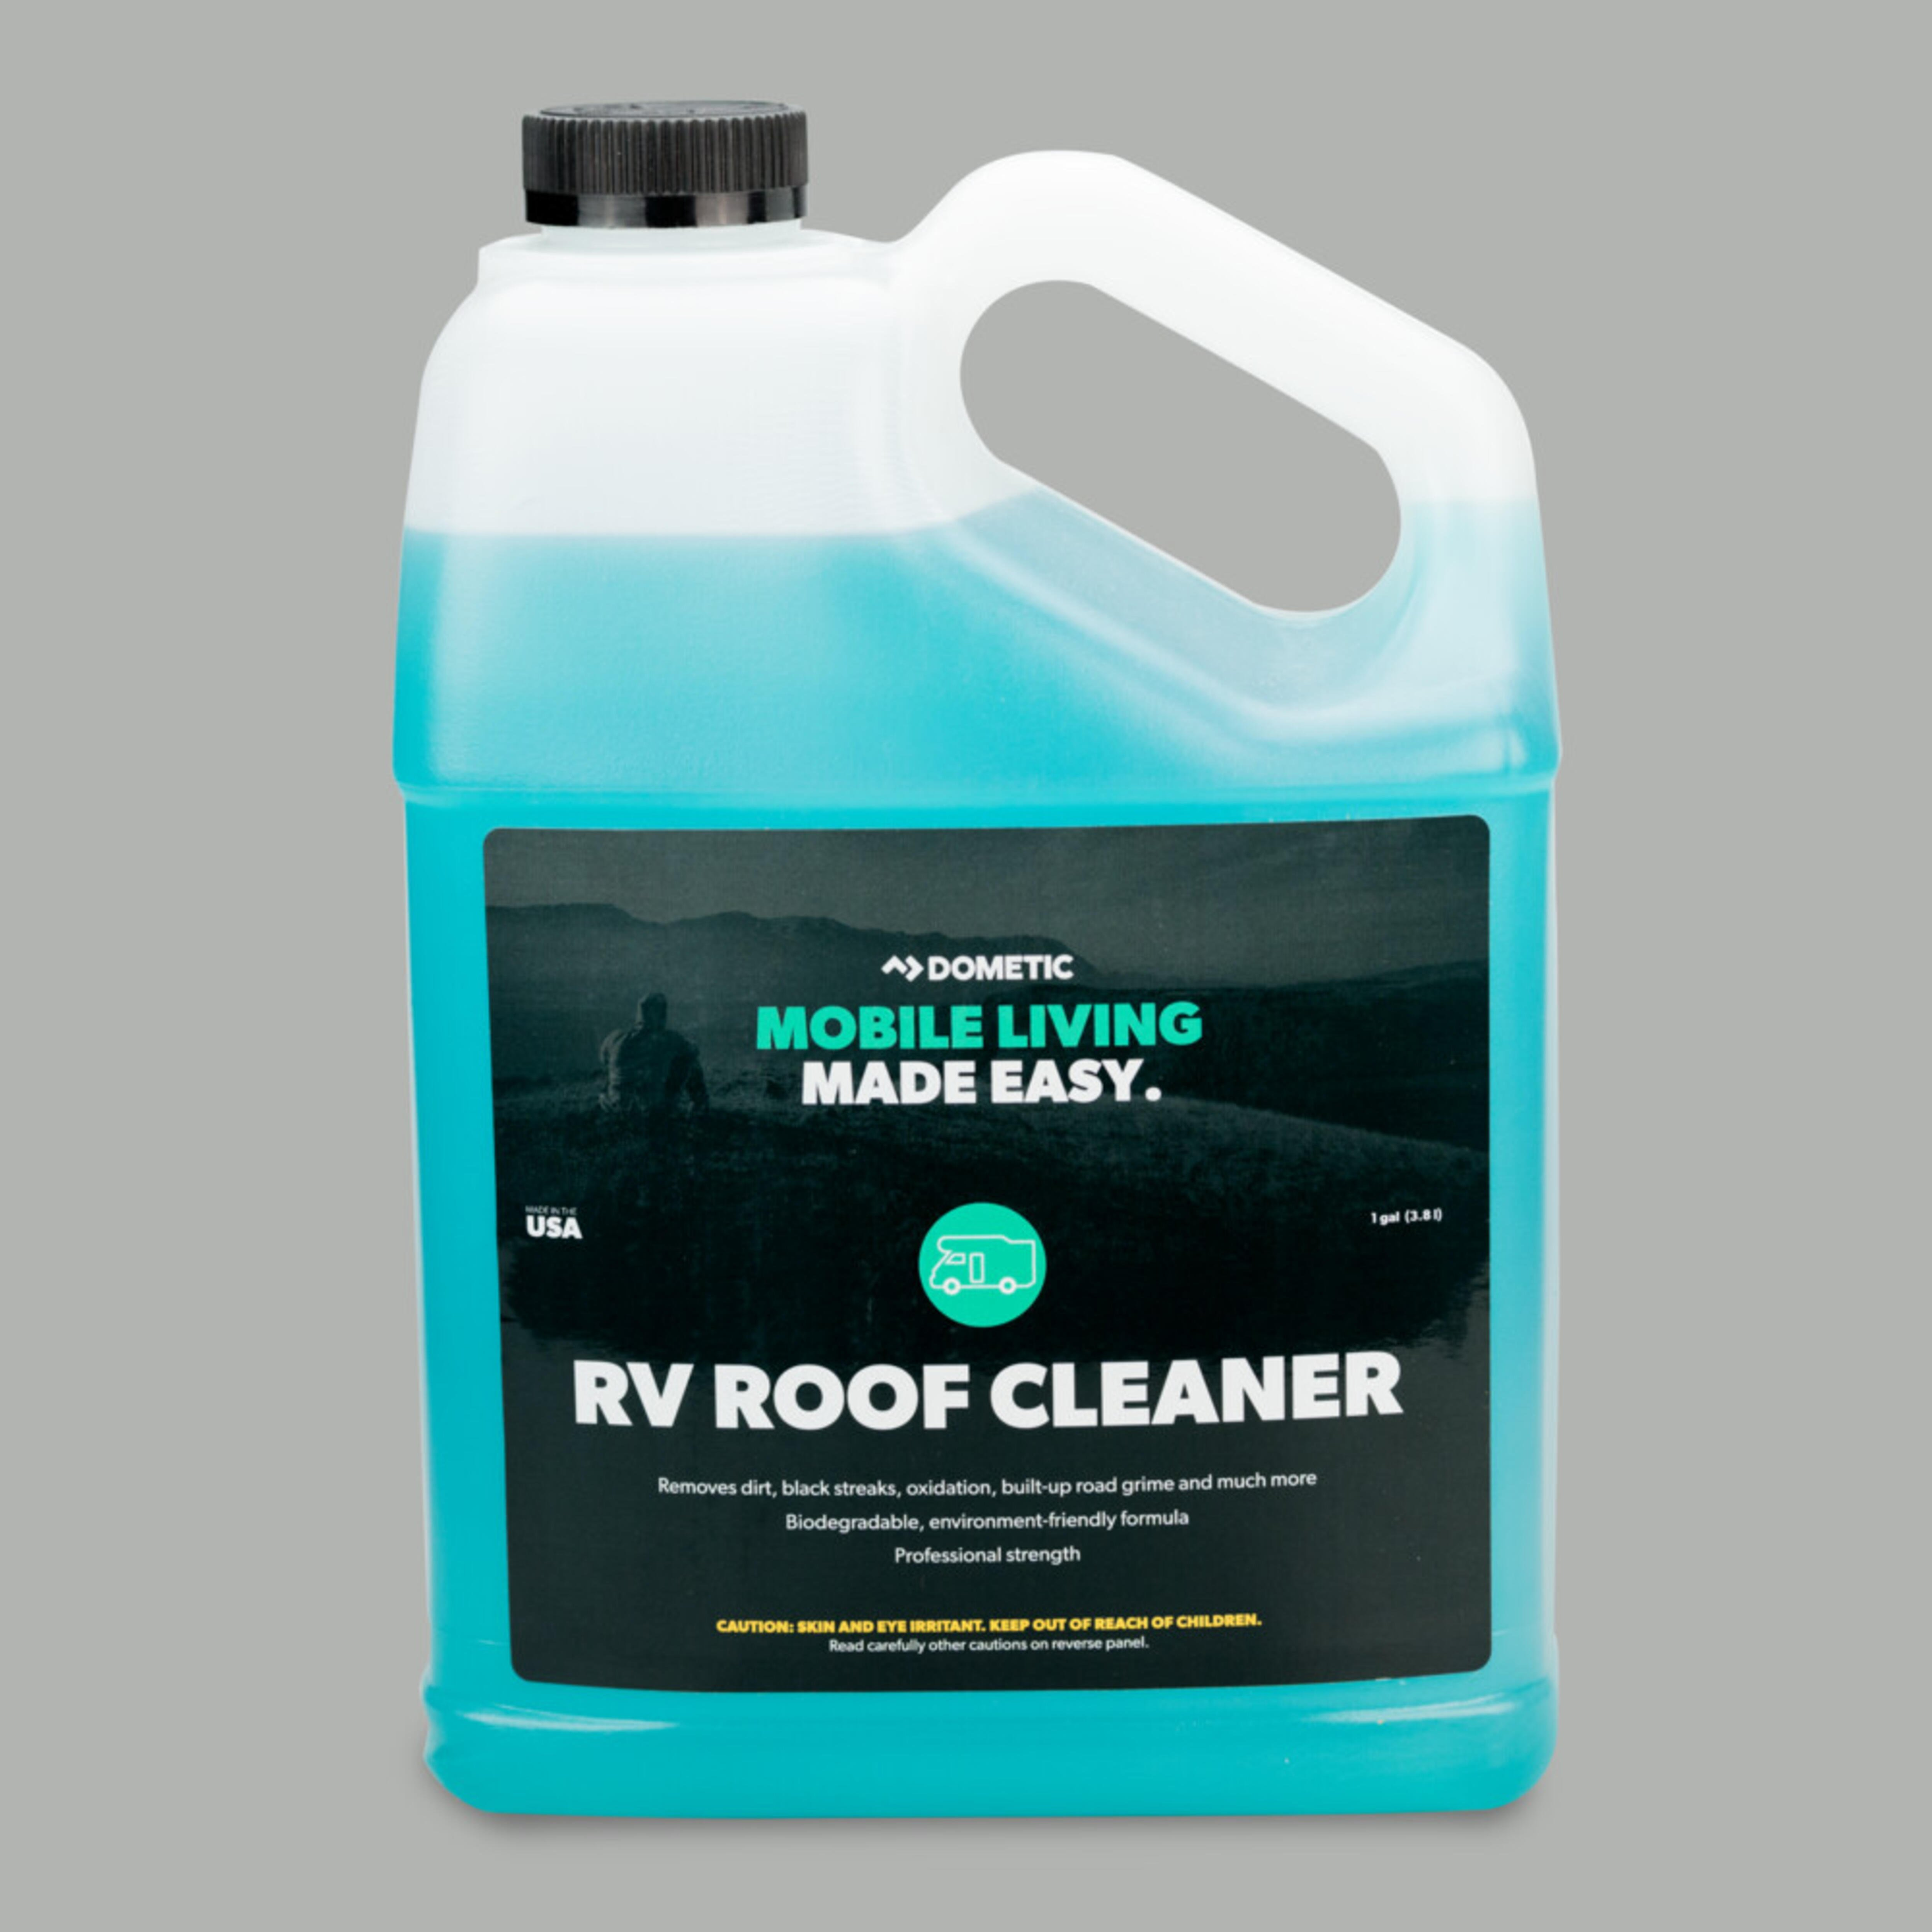 Dometic RV ROOF CLEANER